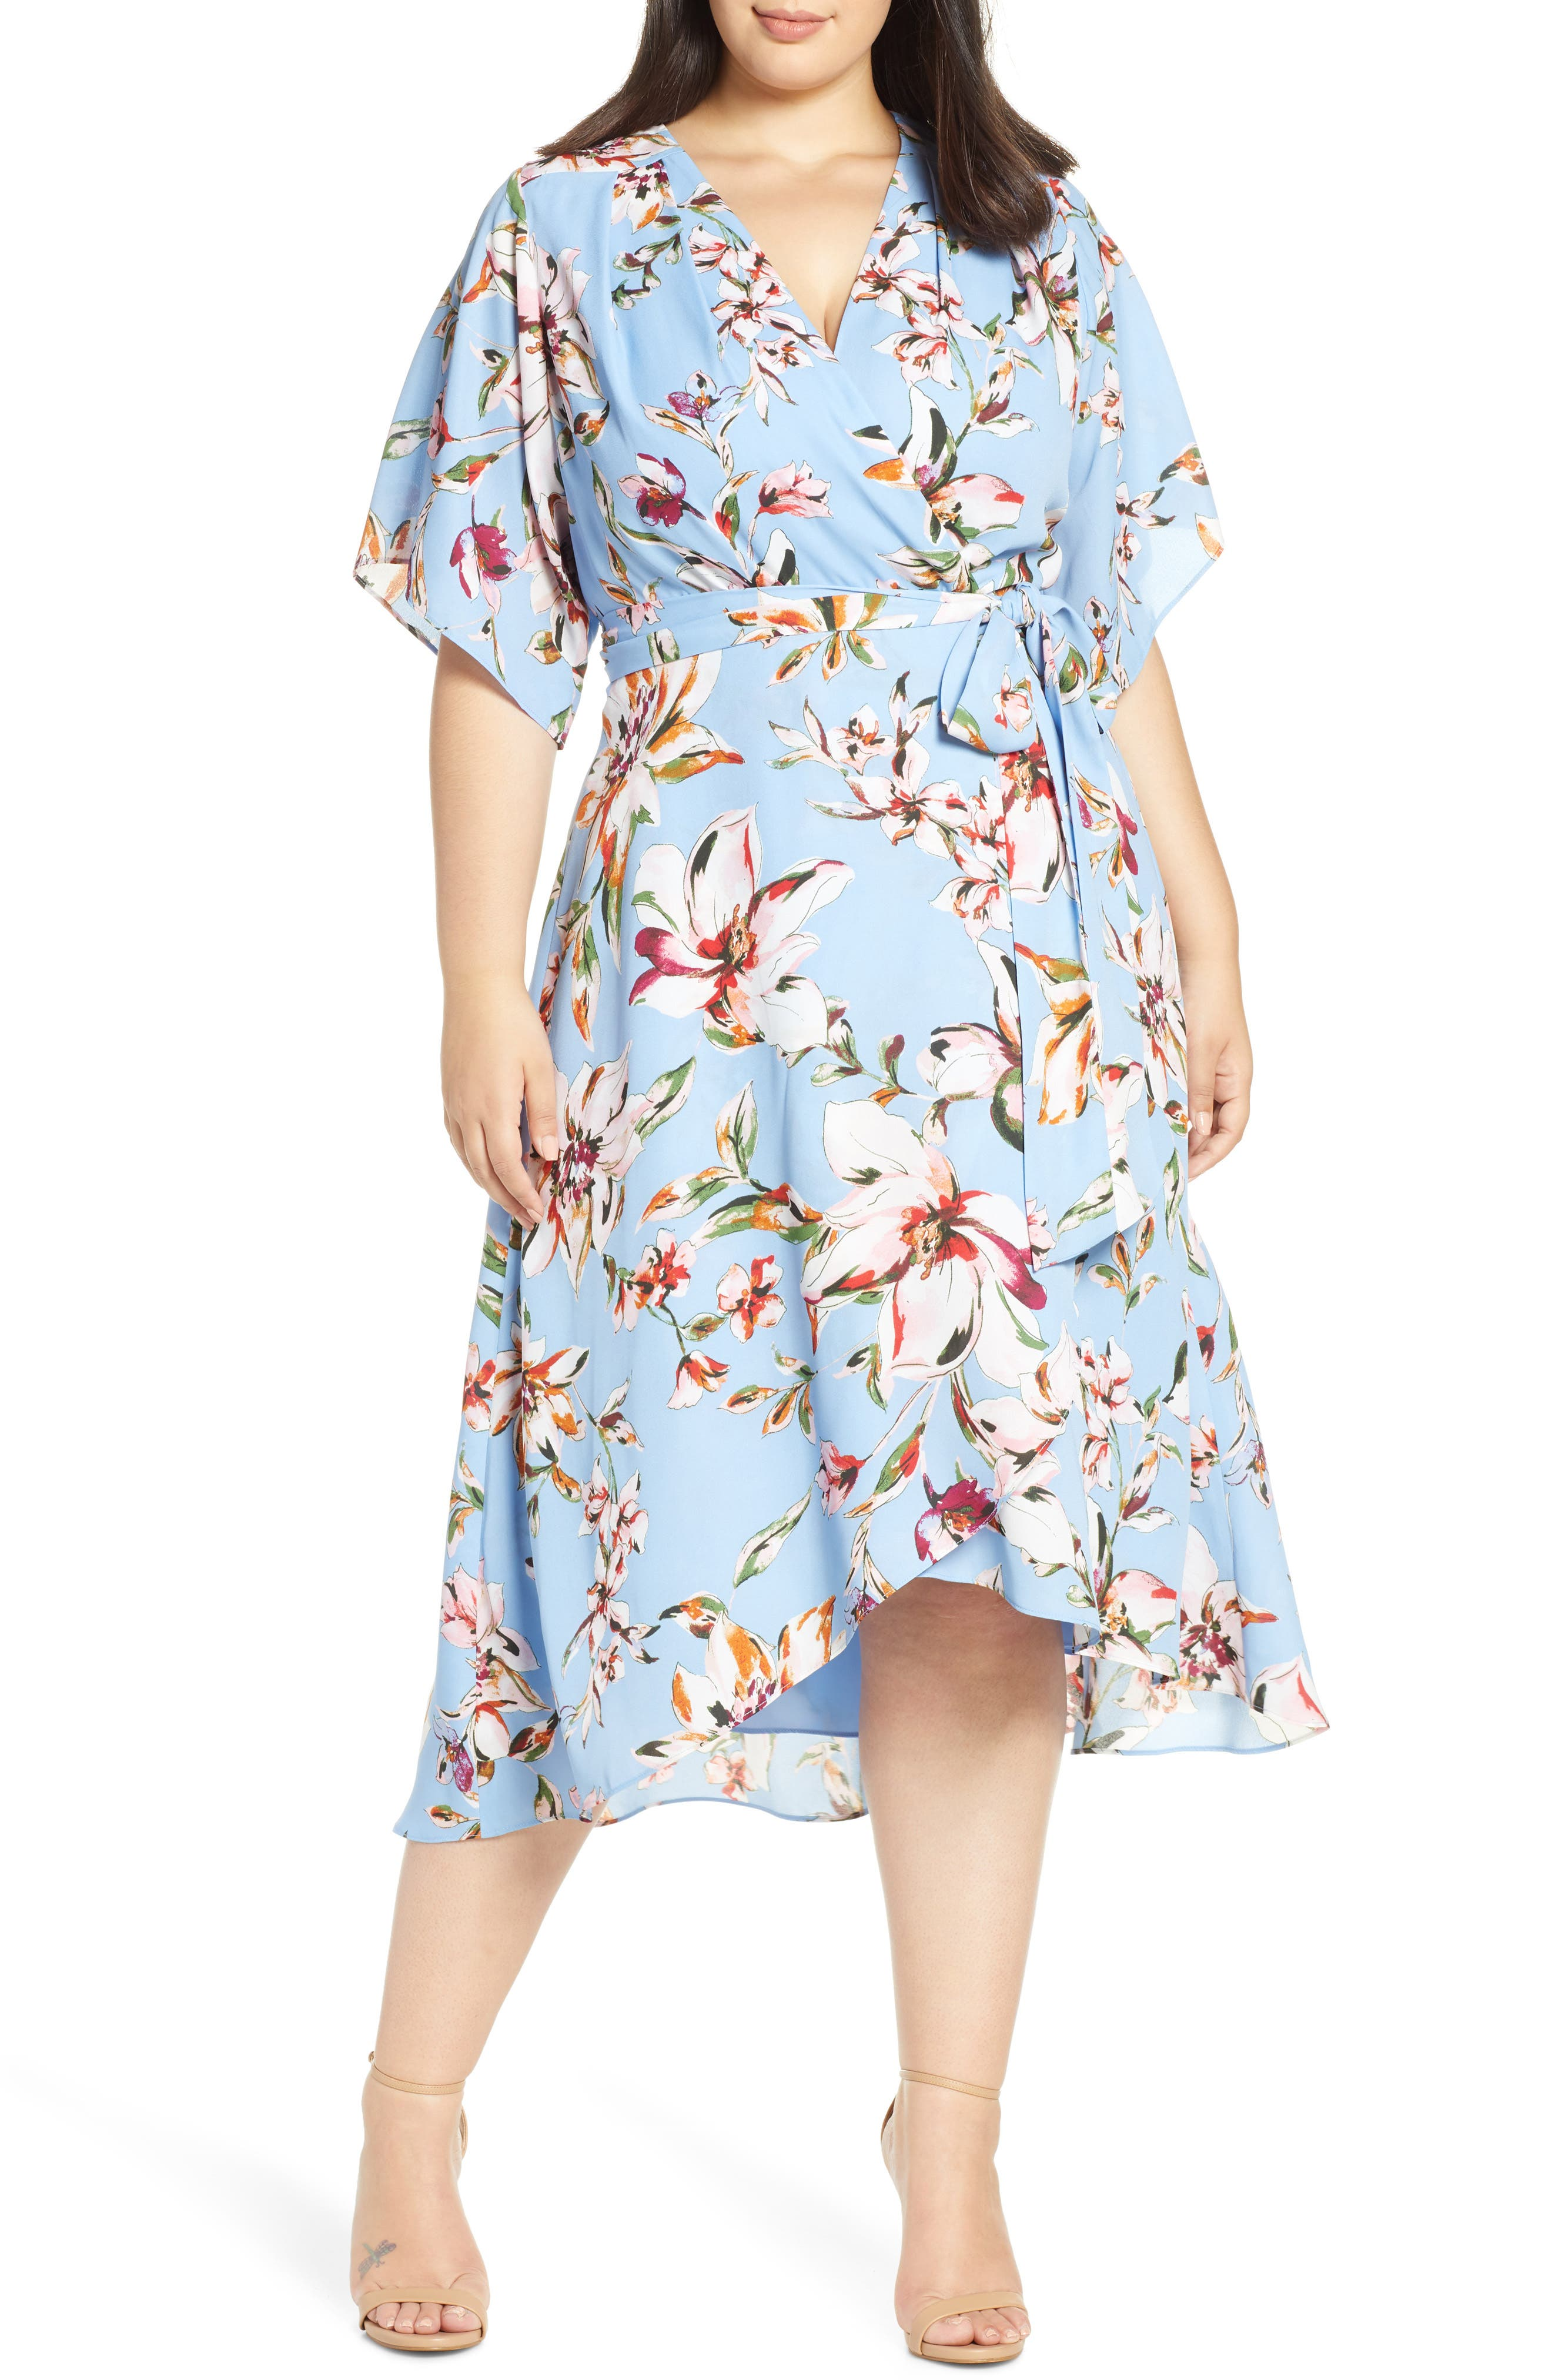 Indian Summers Inspired Clothing Plus Size Womens Tahari Faux Wrap Midi Dress $148.00 AT vintagedancer.com